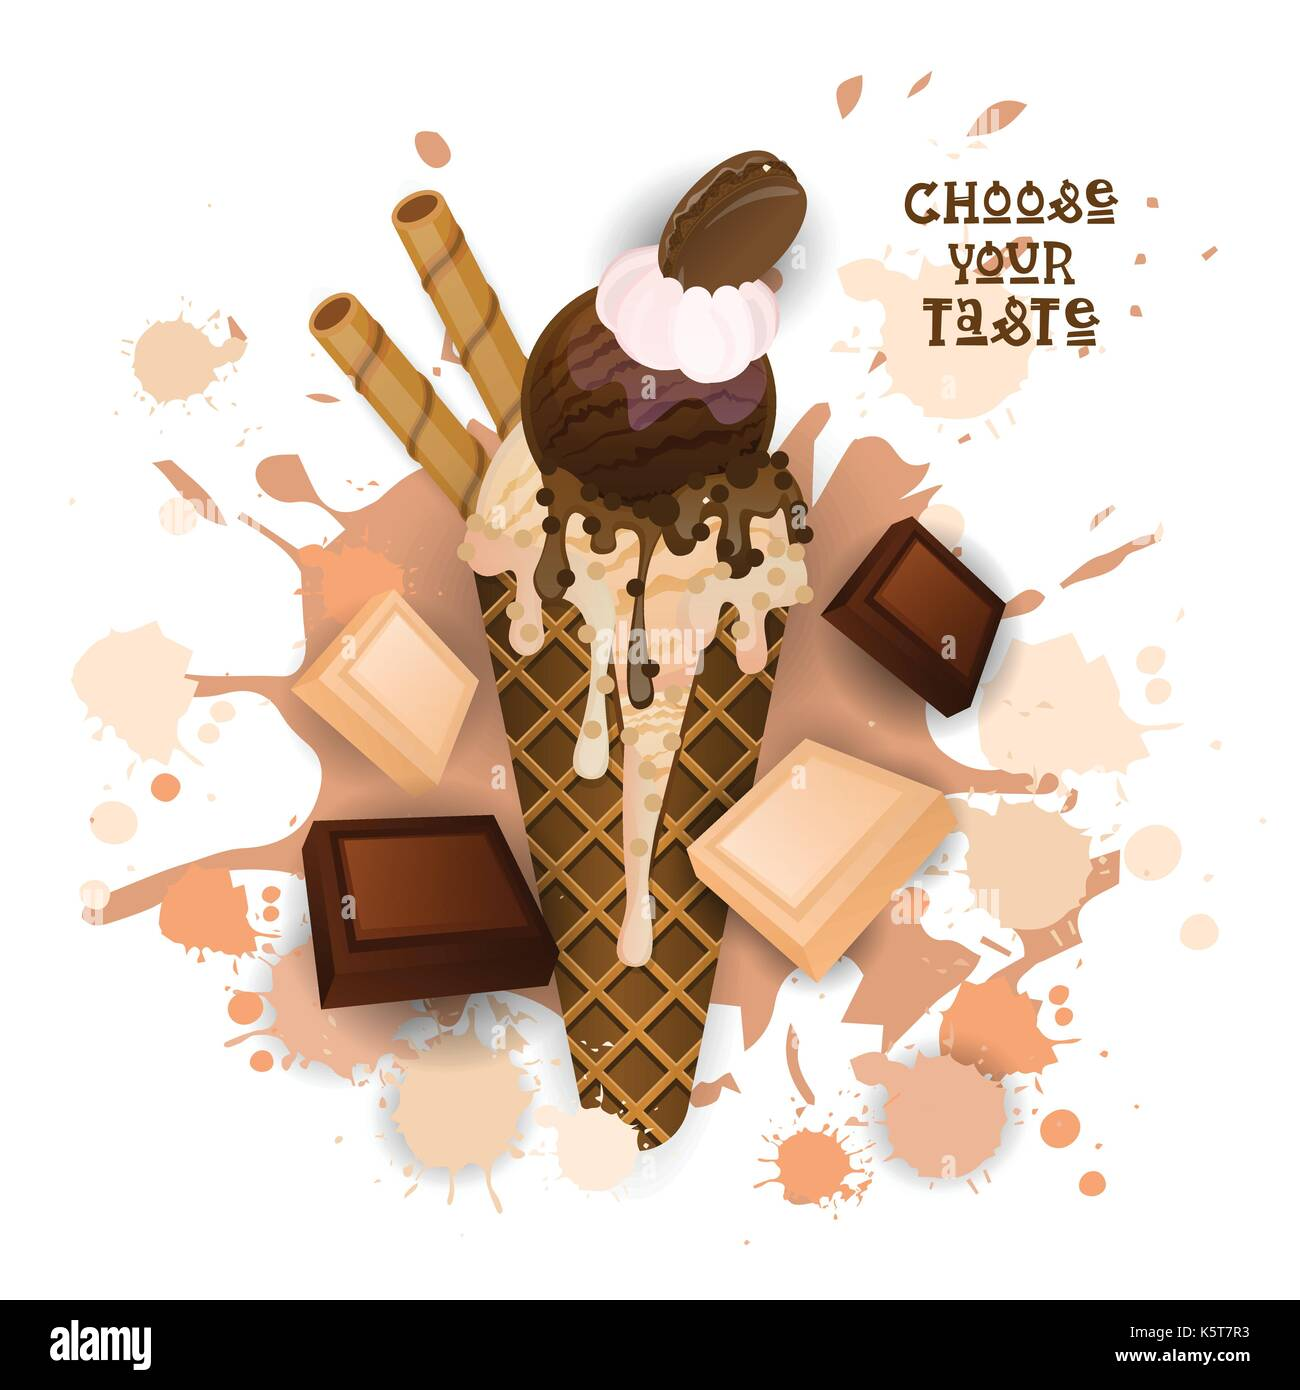 Ice Cream Chocolate Cone Colorful Dessert Icon Choose Your Taste Cafe Poster Stock Vector